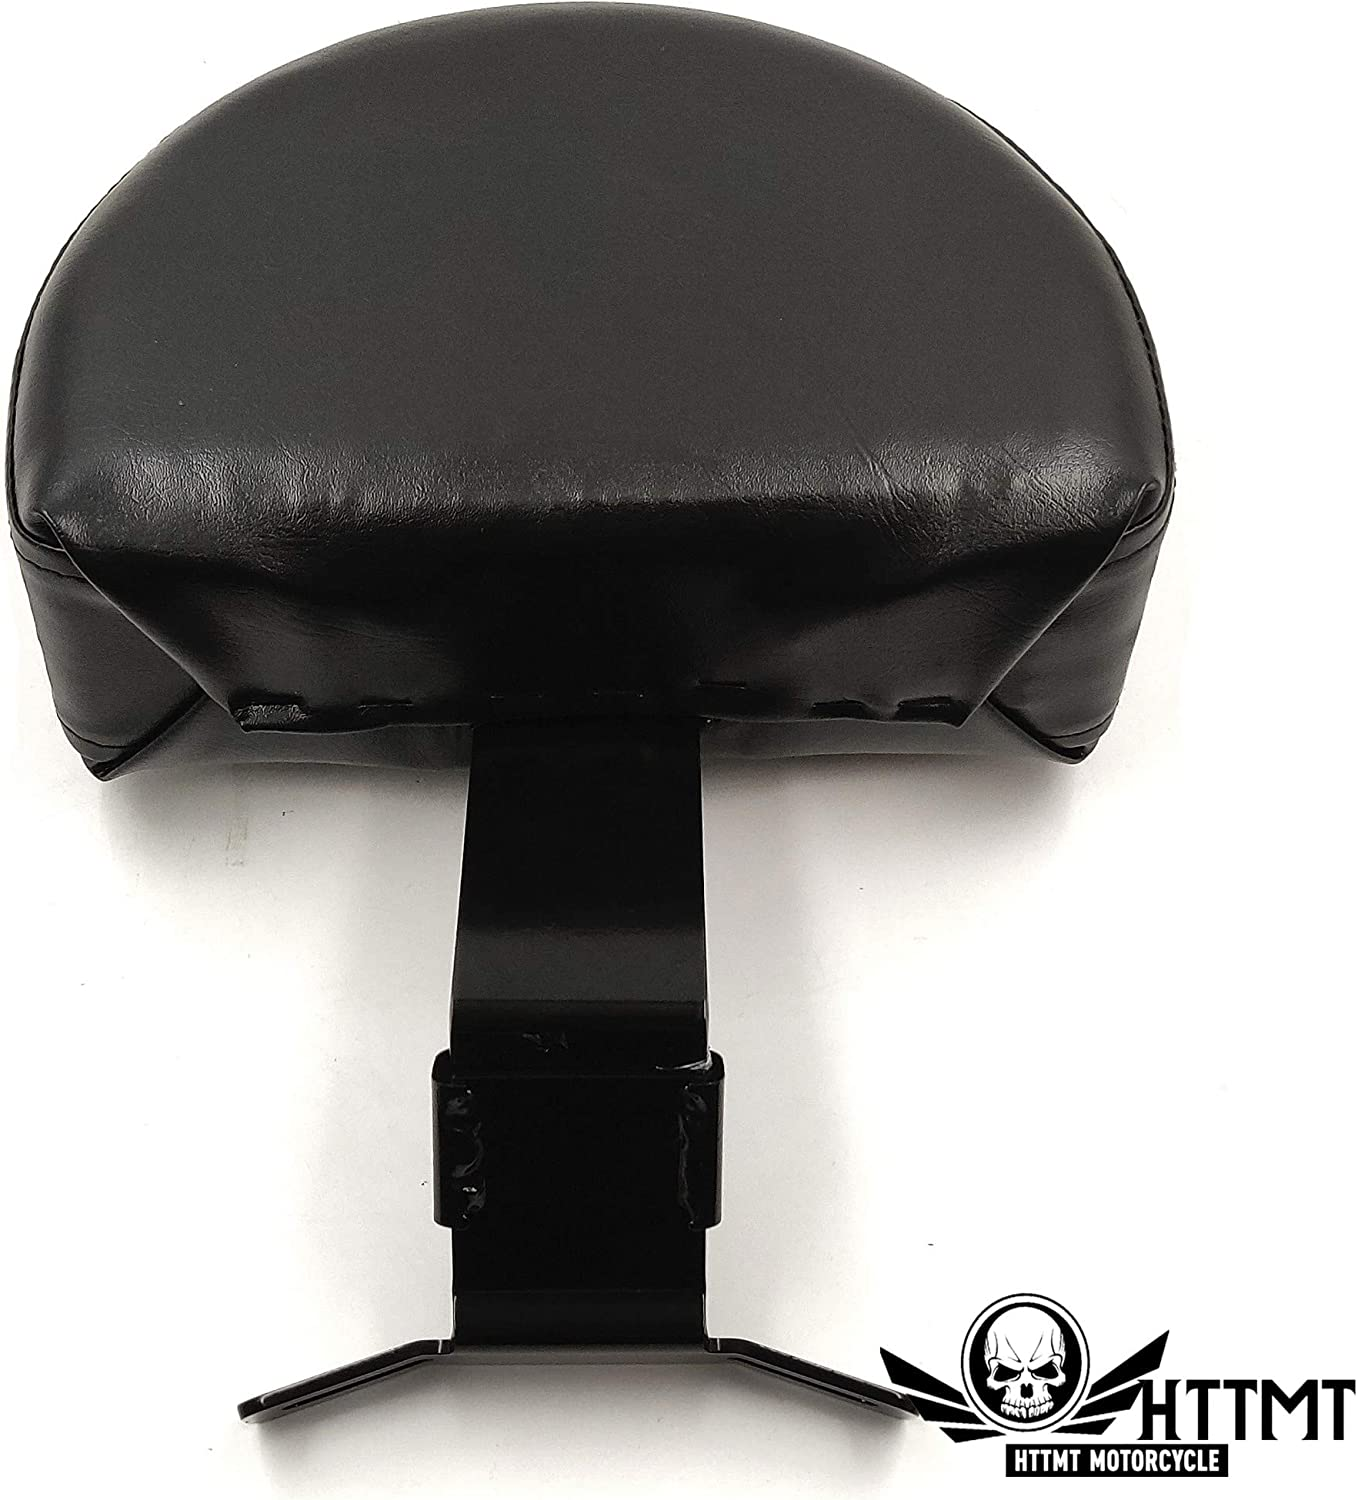 HTTMT TGHD-SBB045-I Driver Backrest Easy ON//OFF Studded Compatible with Harley 2007-2017 Heritage Softail//Fatboy